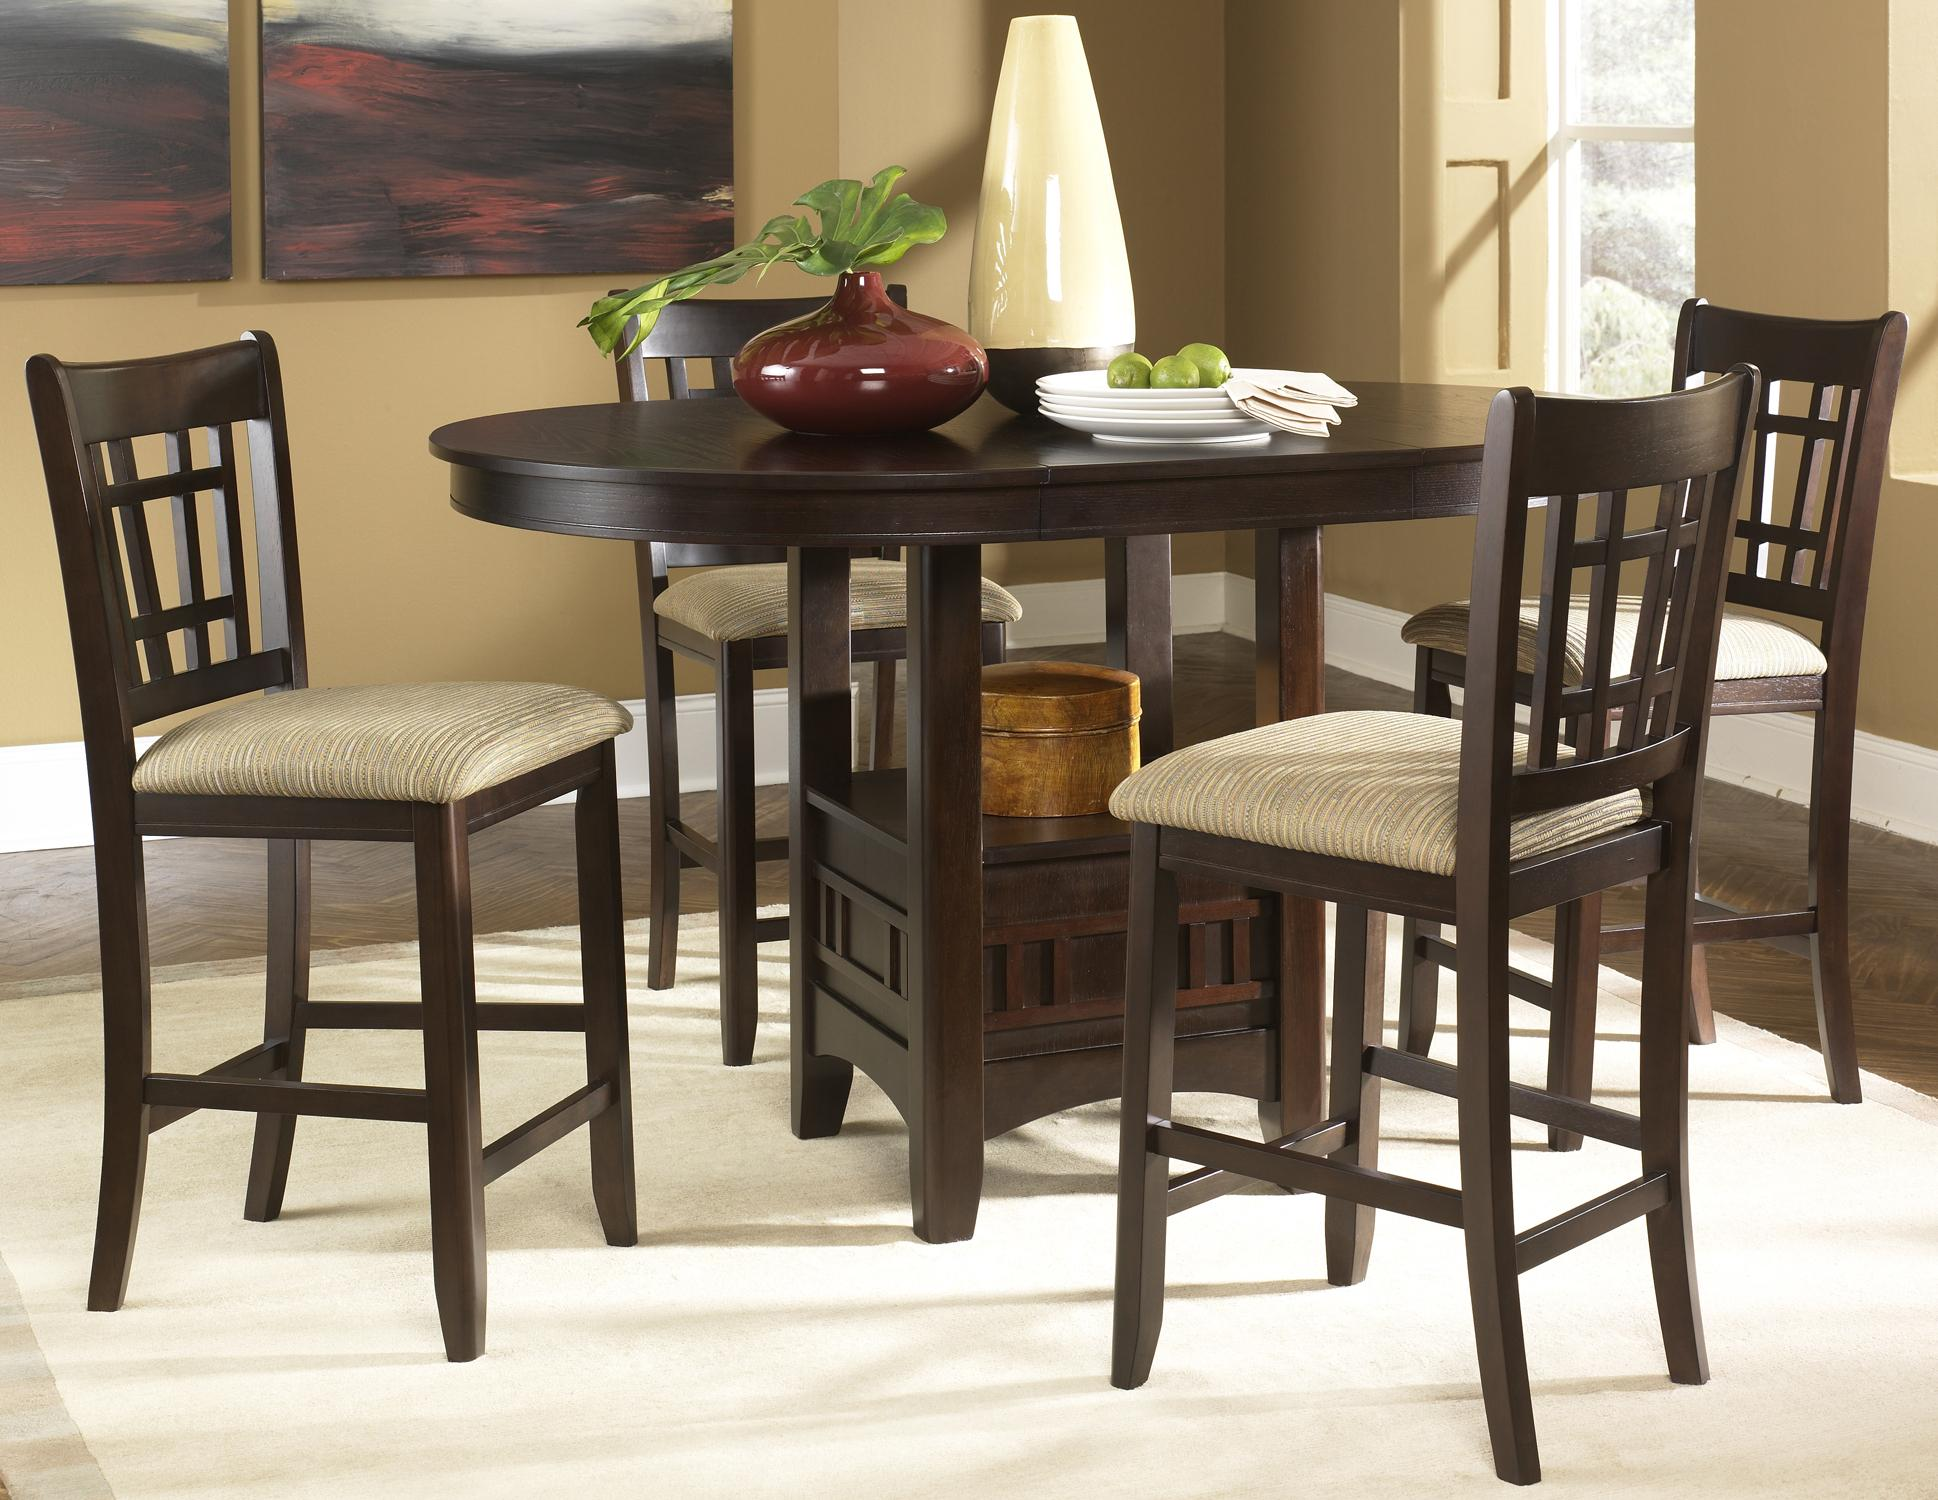 Elegant Oval Pub Table U0026 24 Inch Upholstered Bar Stool Set